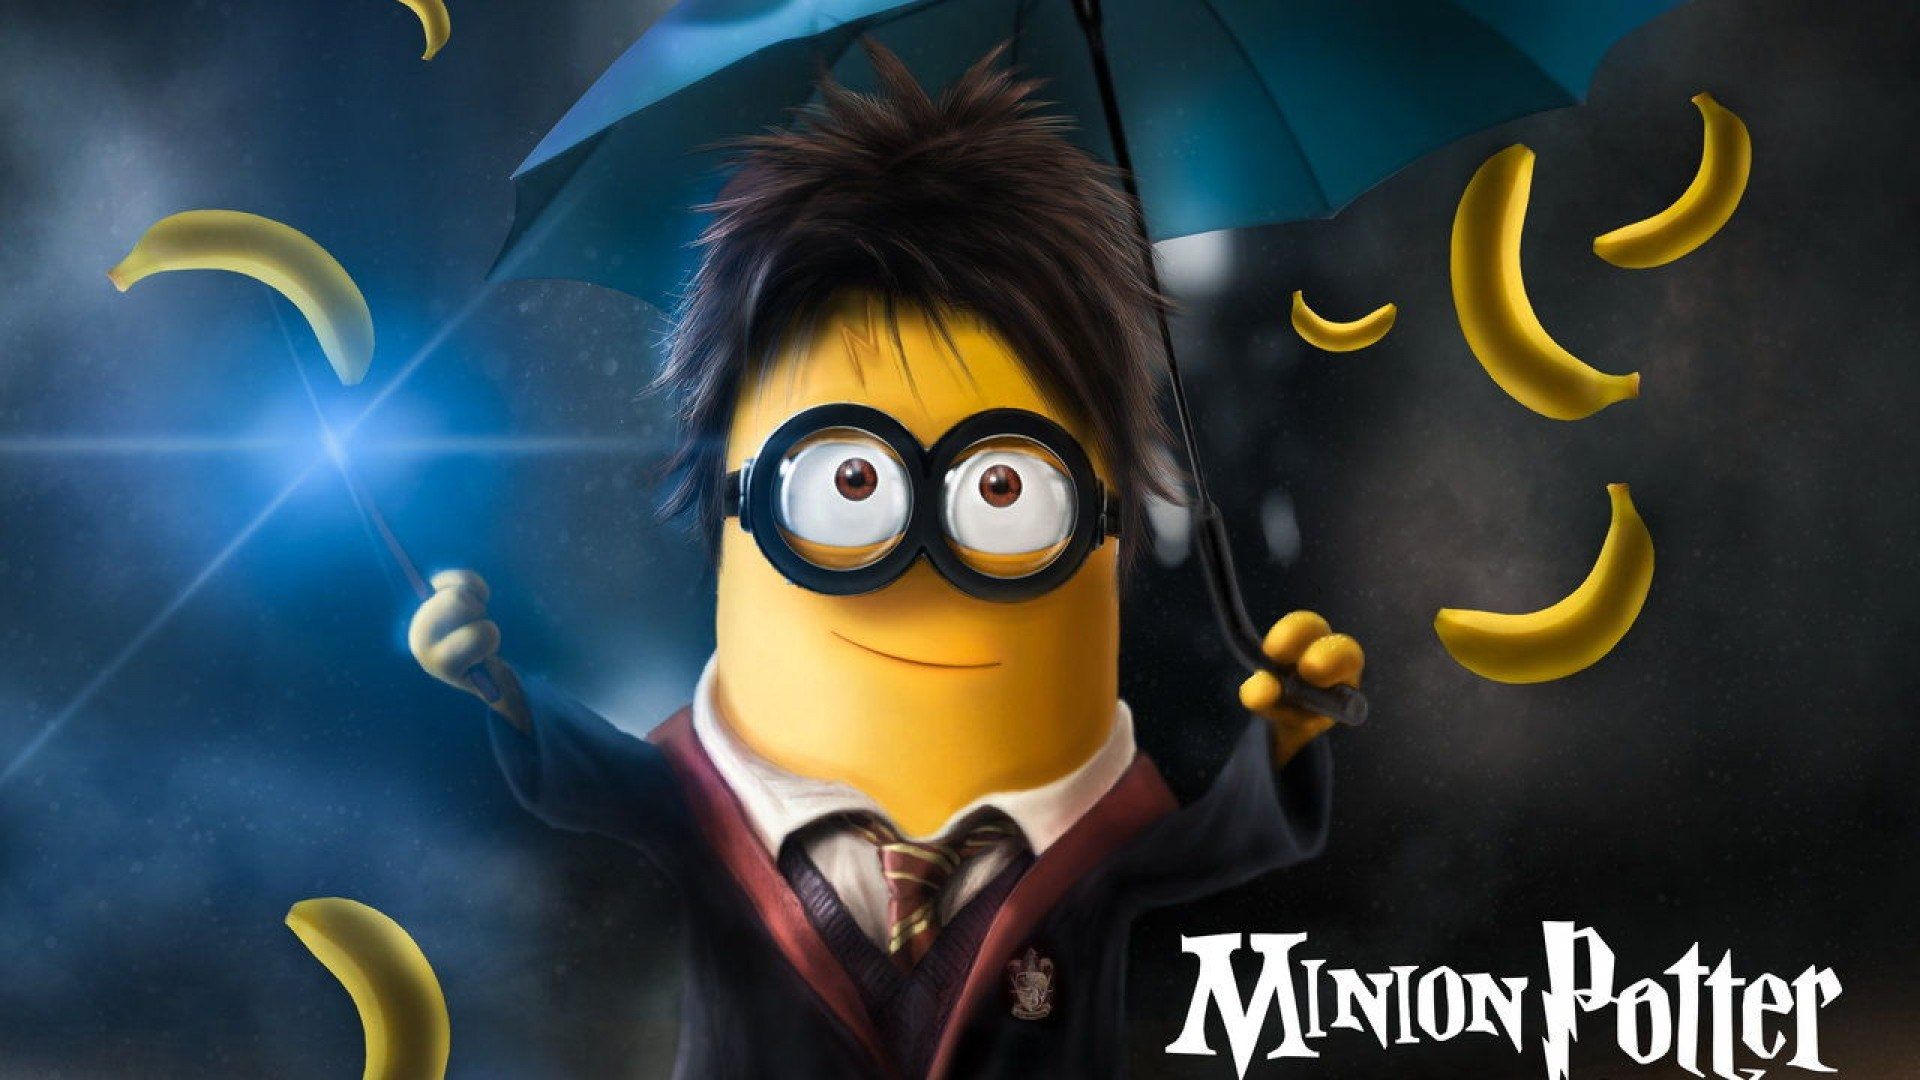 minion-hd-resolution-wallpaper-wpc9007674